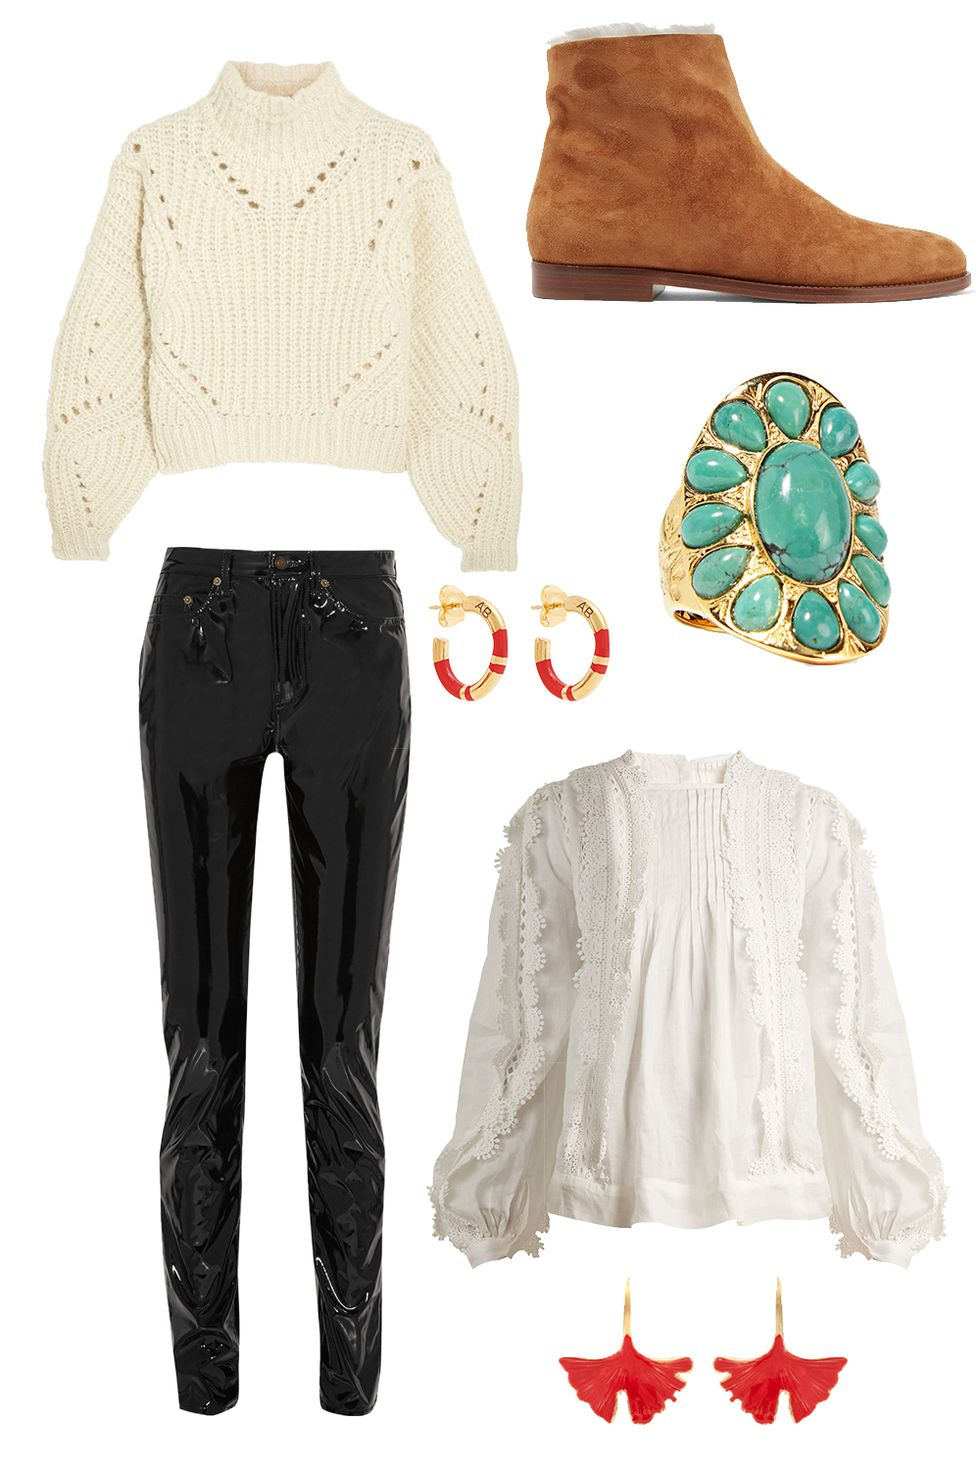 black-leggings-leather-white-sweater-turtleneck-earrings-ring-turquoise-cognac-shoe-booties-fall-winter-thanksgiving-outfits-holidays-lunch.jpg